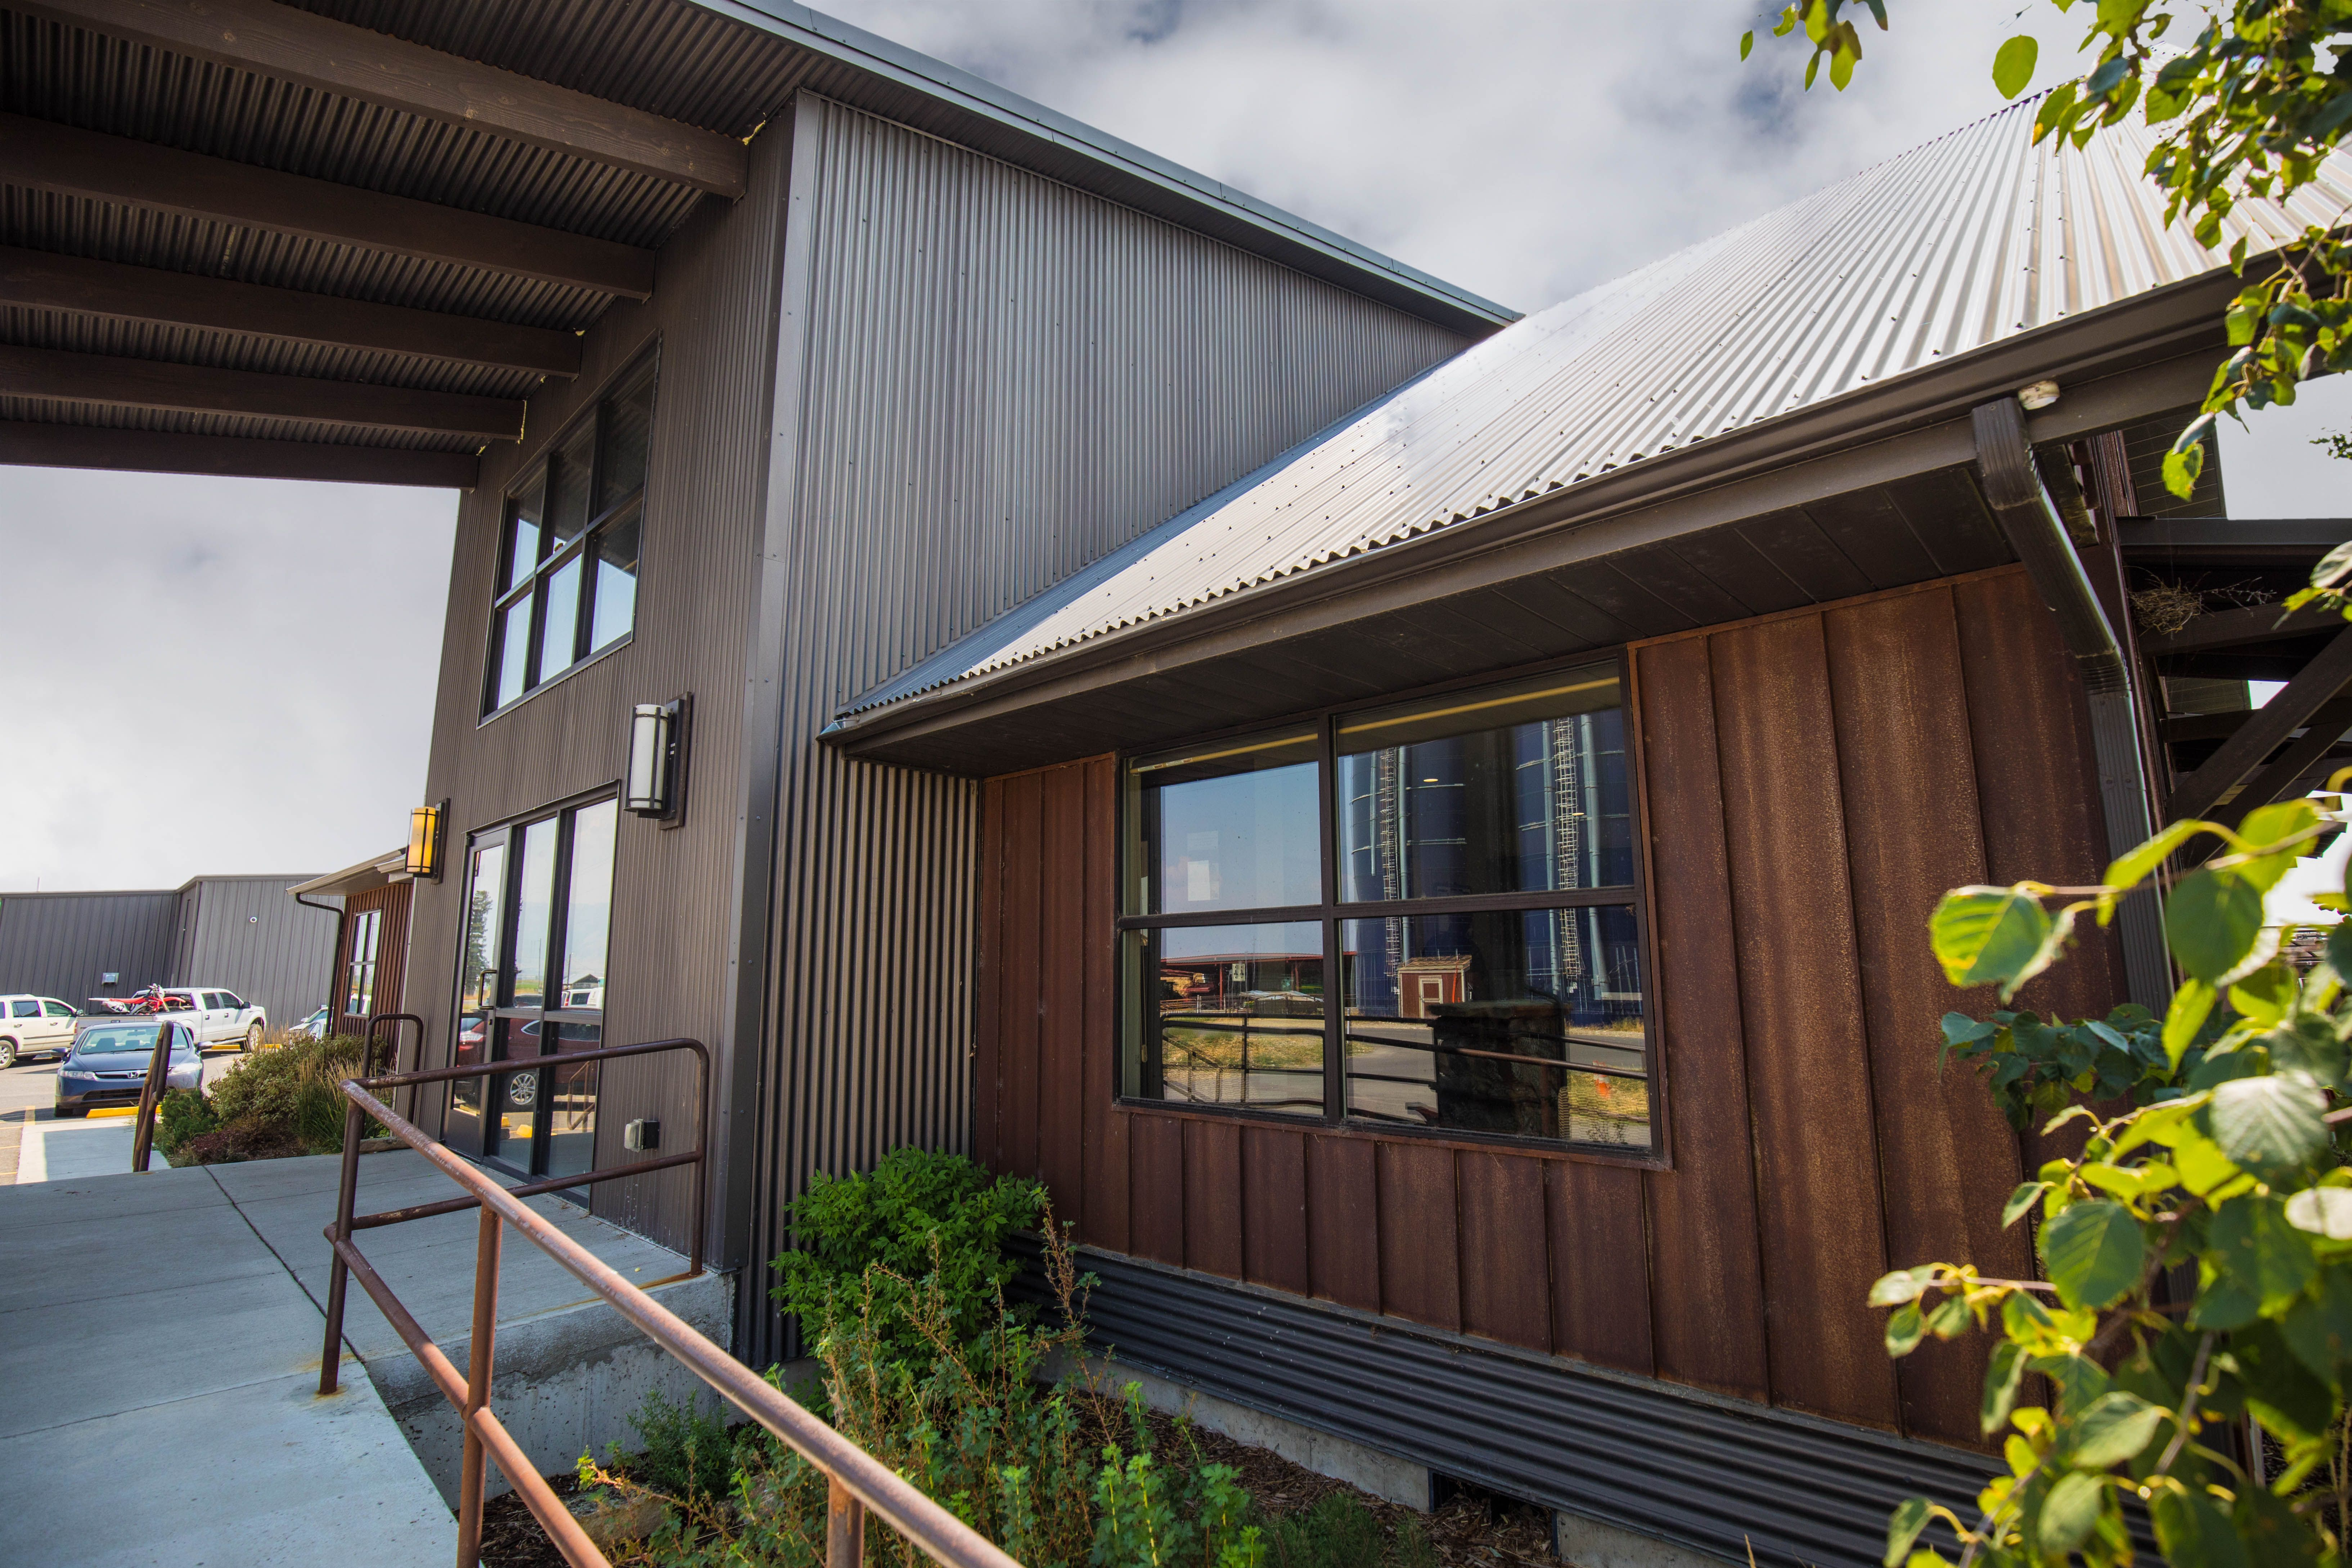 Corrugated Bonderized Commercial Siding In 2020 With Images Metal Roof Metal Panels Standing Seam